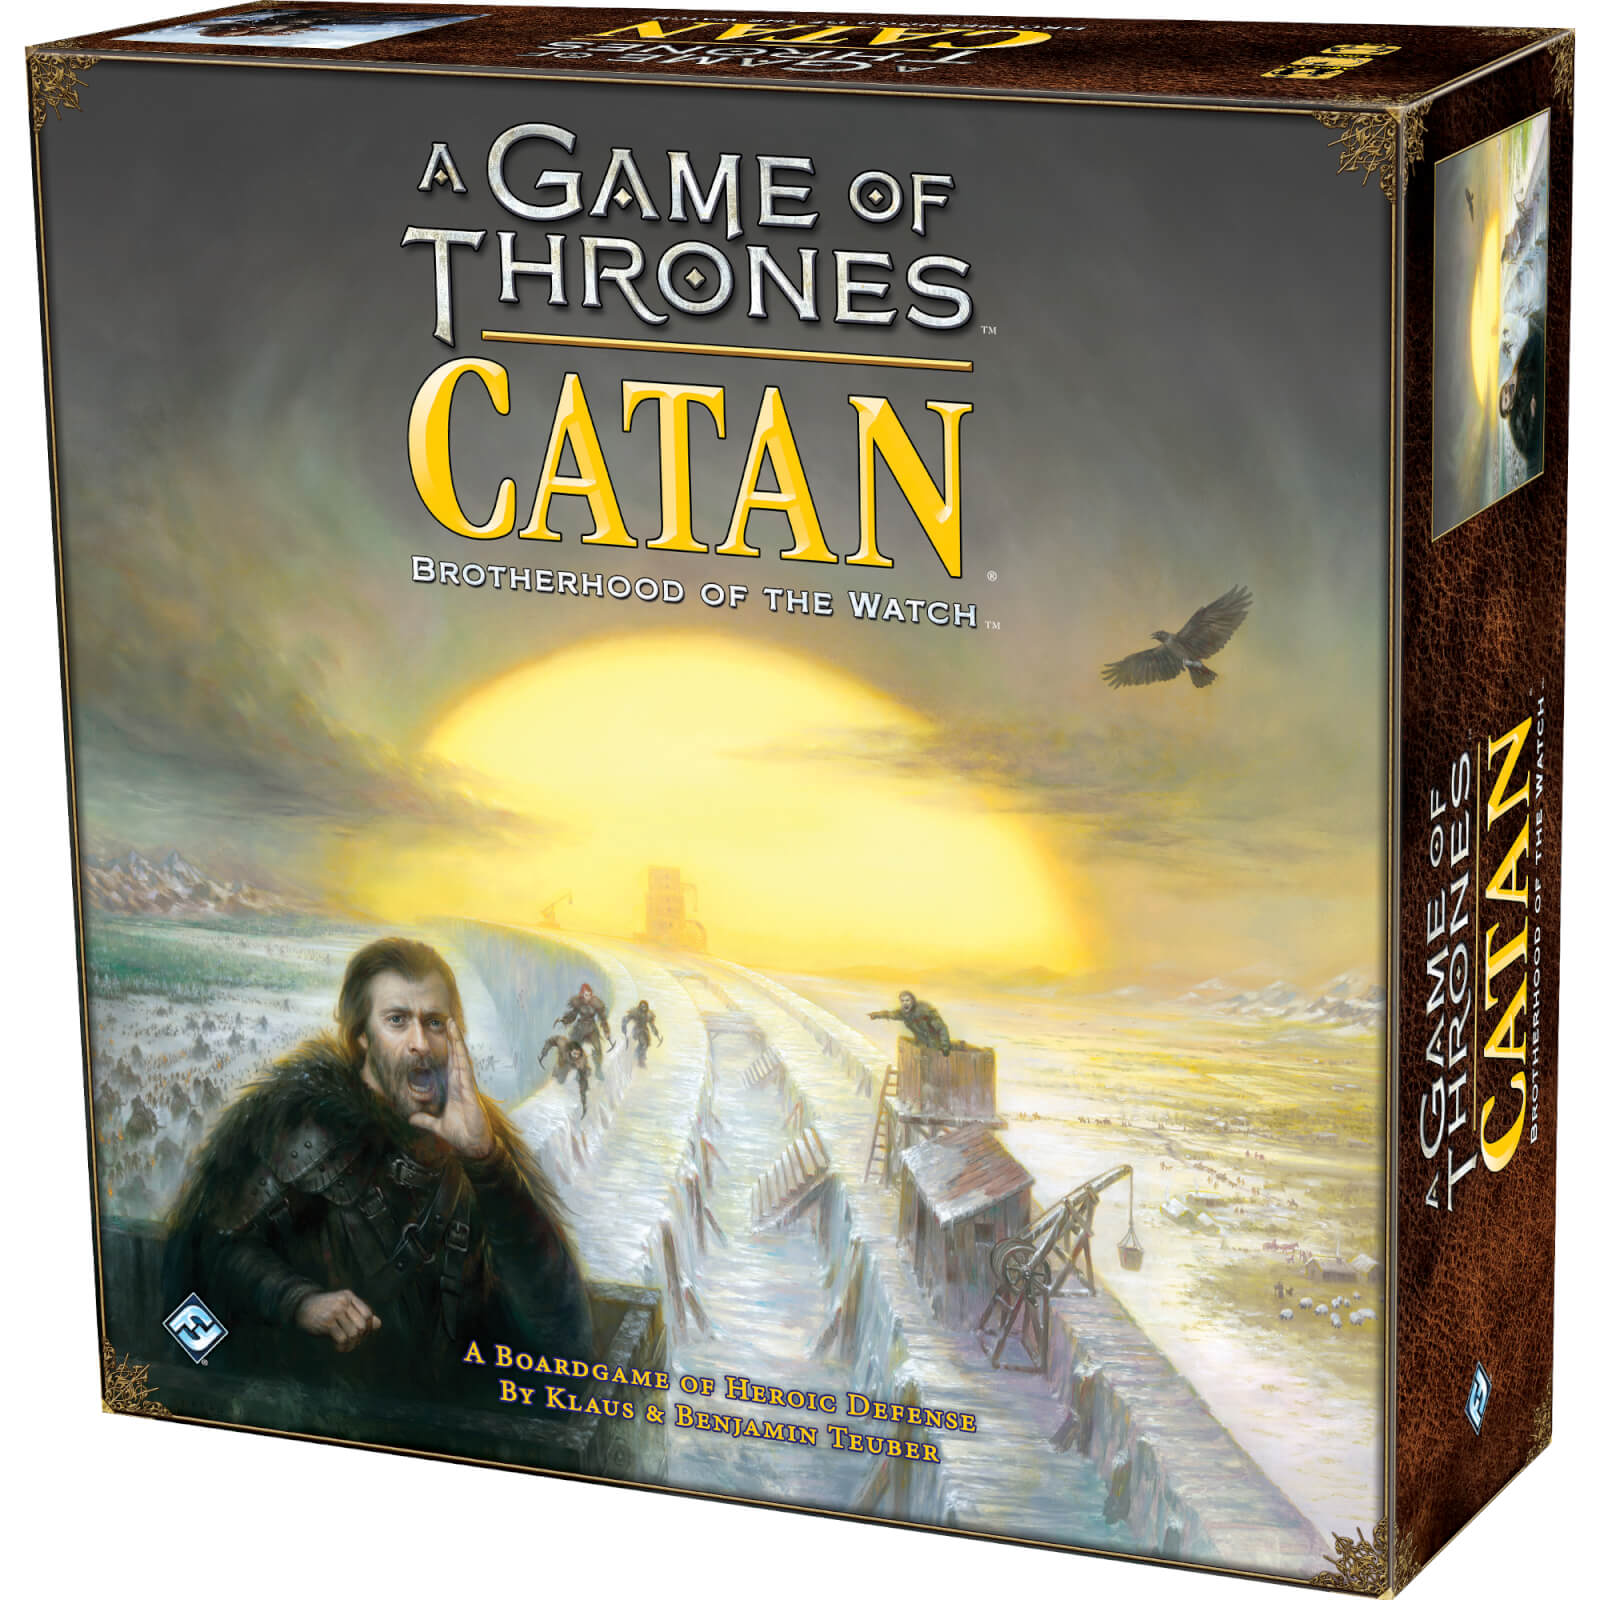 Image of A Game of Thrones Catan: Brotherhood of the Watch